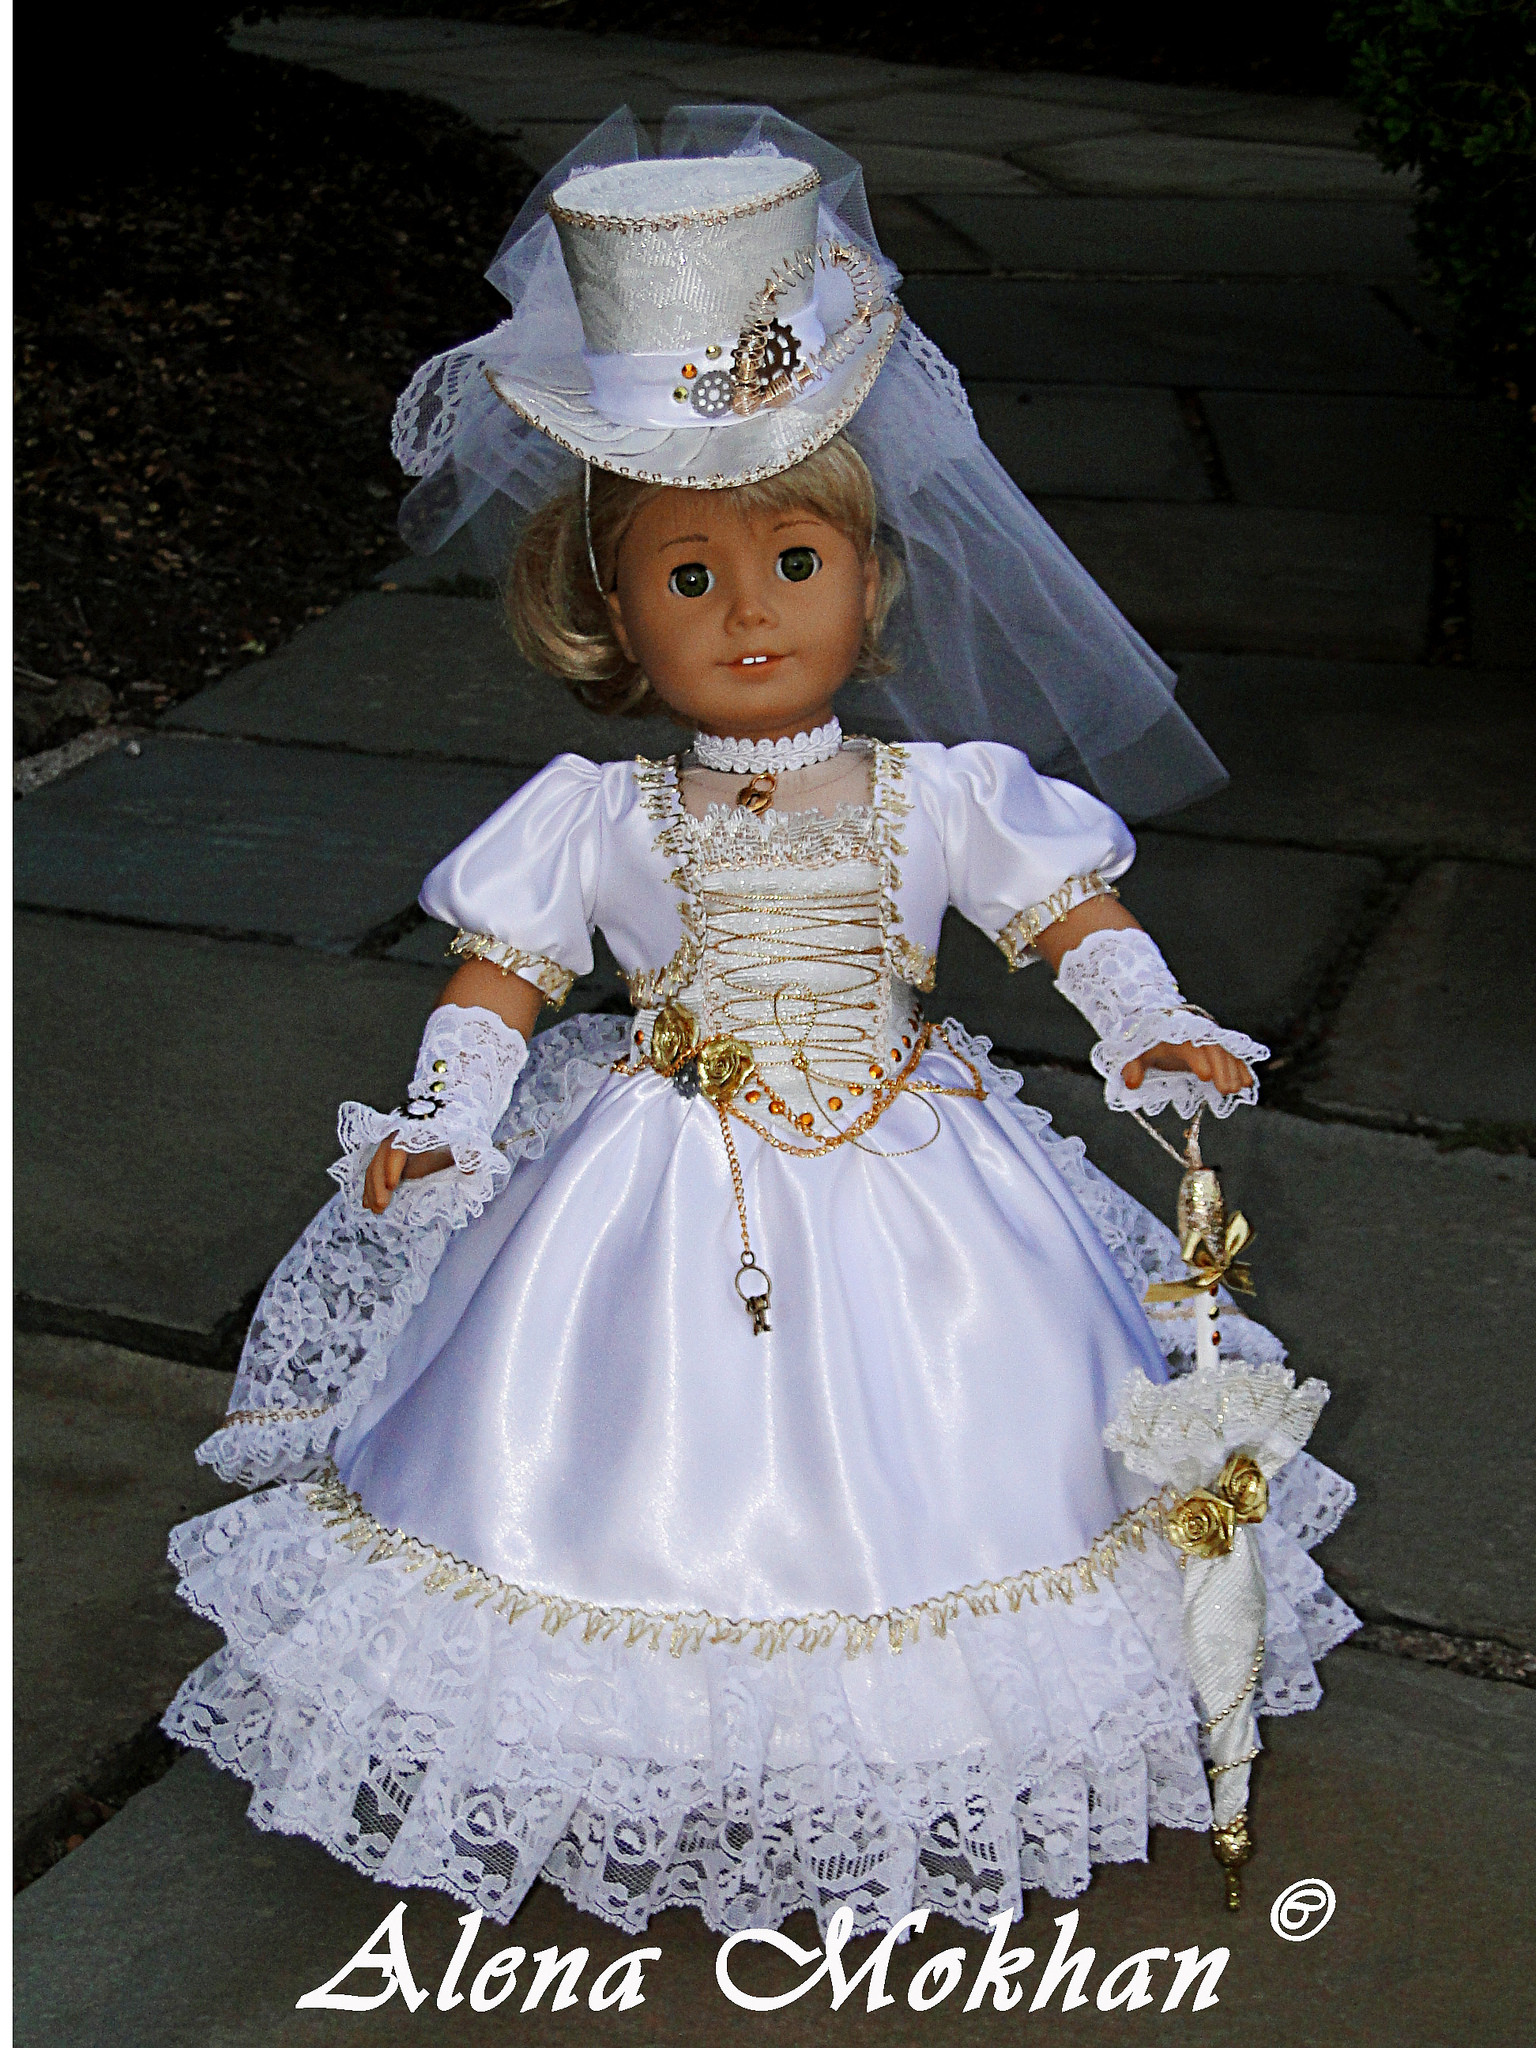 Lovely Steampunk Victorian Wedding Dress for American Girl or O American Girl Doll Wedding Dress Of Inspirational 2015 Romantic Wedding Dress Clothing for Dolls Mini White American Girl Doll Wedding Dress